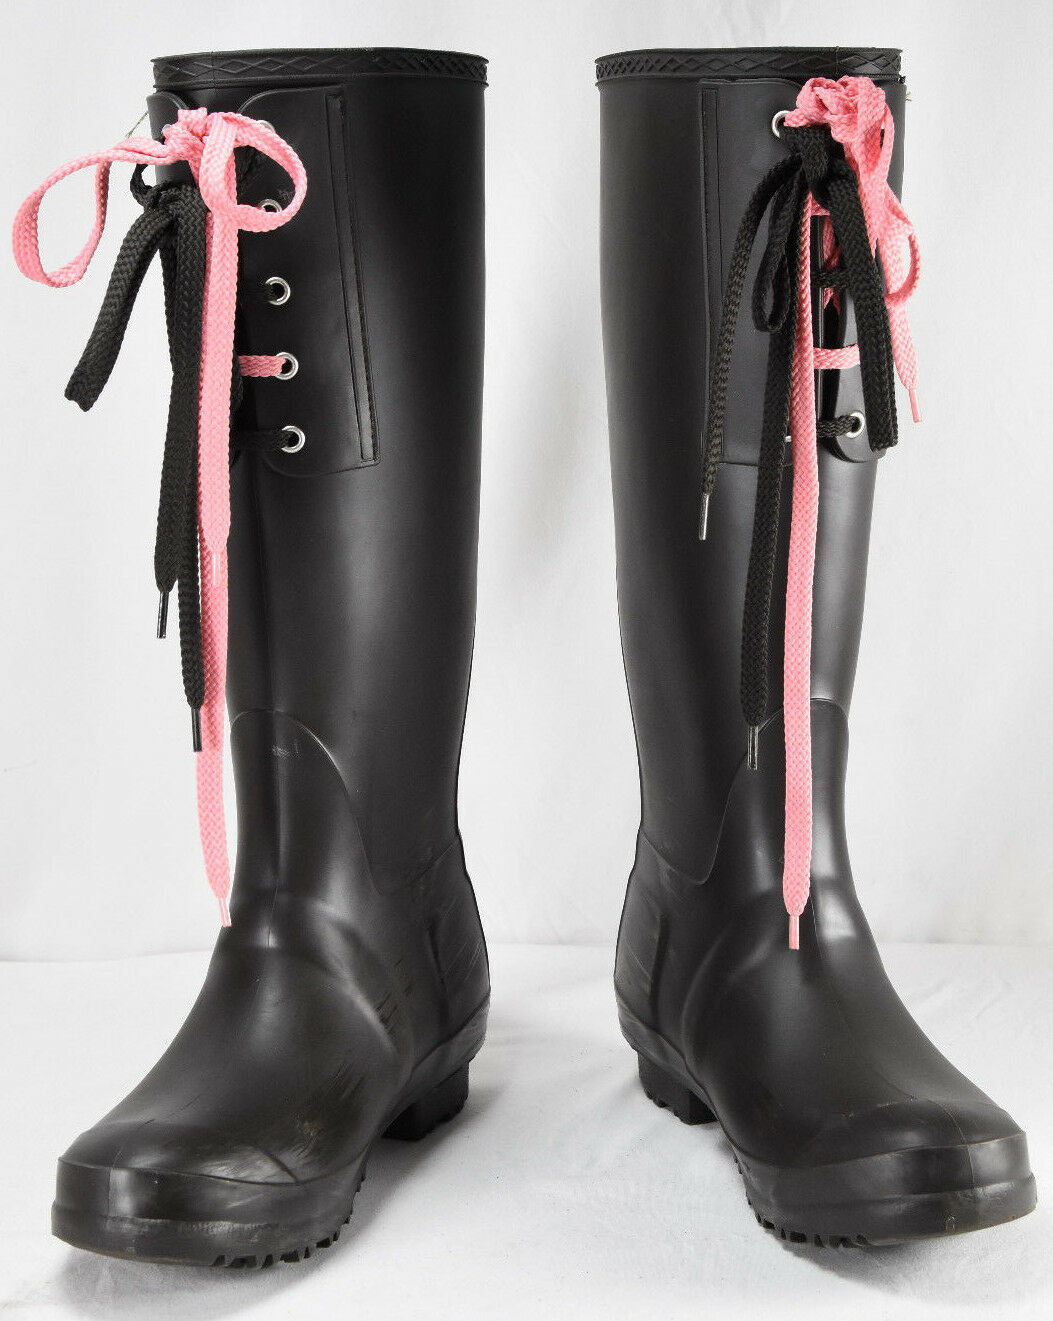 BARNEYS NEW YORK Brown & Pink Laced Rubber Rain Boots Size 39 US 9 Made In Italy